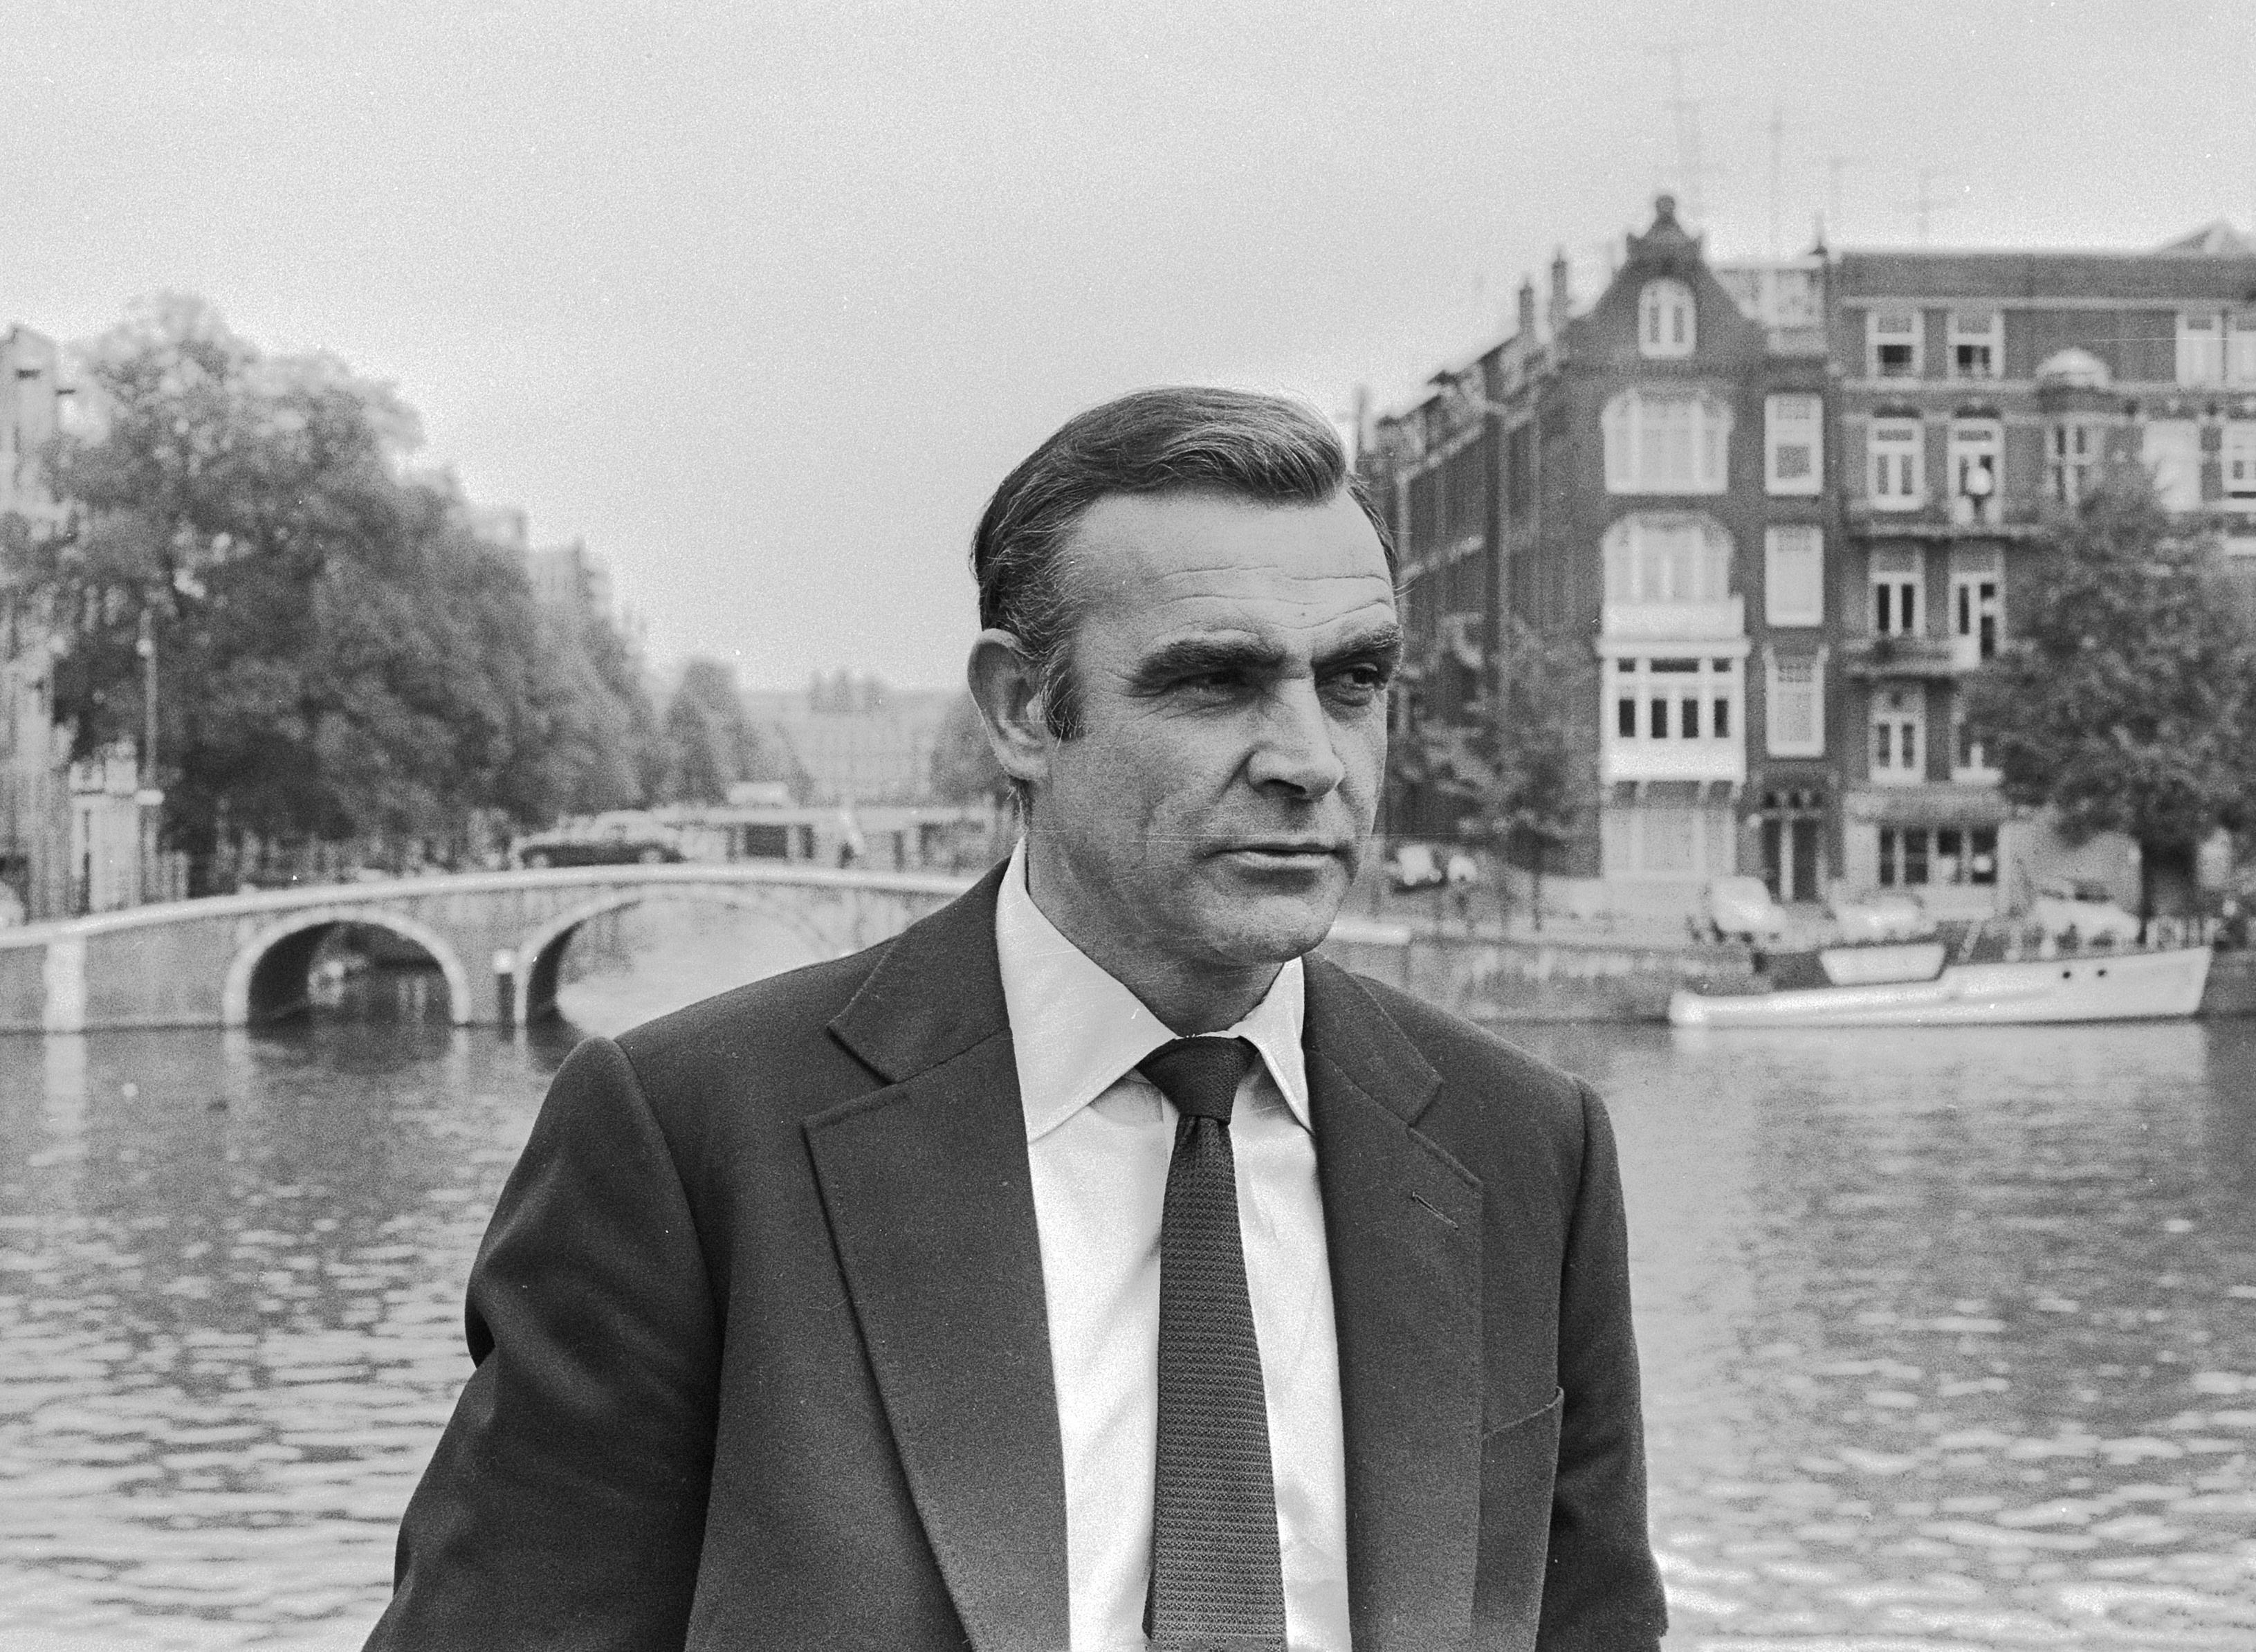 Sean Connery during the filming in Amsterdam.